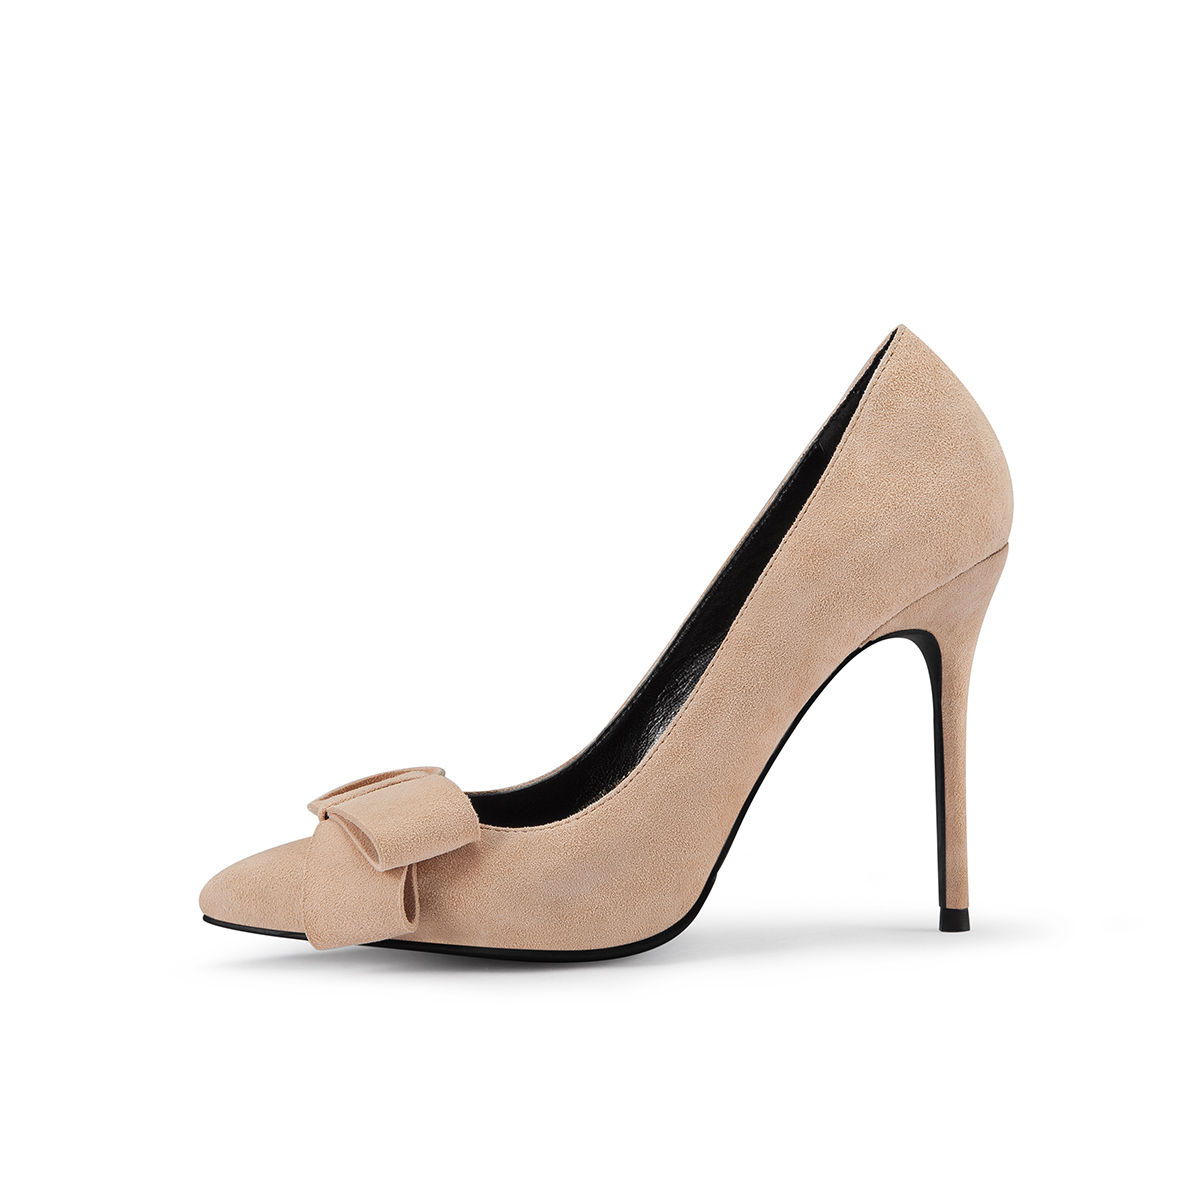 GAOZZE Suede Leather Ladies Lovely Bowknot Pumps High Heel Shoes Pointed Toe Thin High Heel 10cm Nude Color Zapatos De Mujer famiaoo women pumps chaussure femme black gray zapatos mujer tacon high heel 2017 pointed toe thin heel ladies pumps women shoes